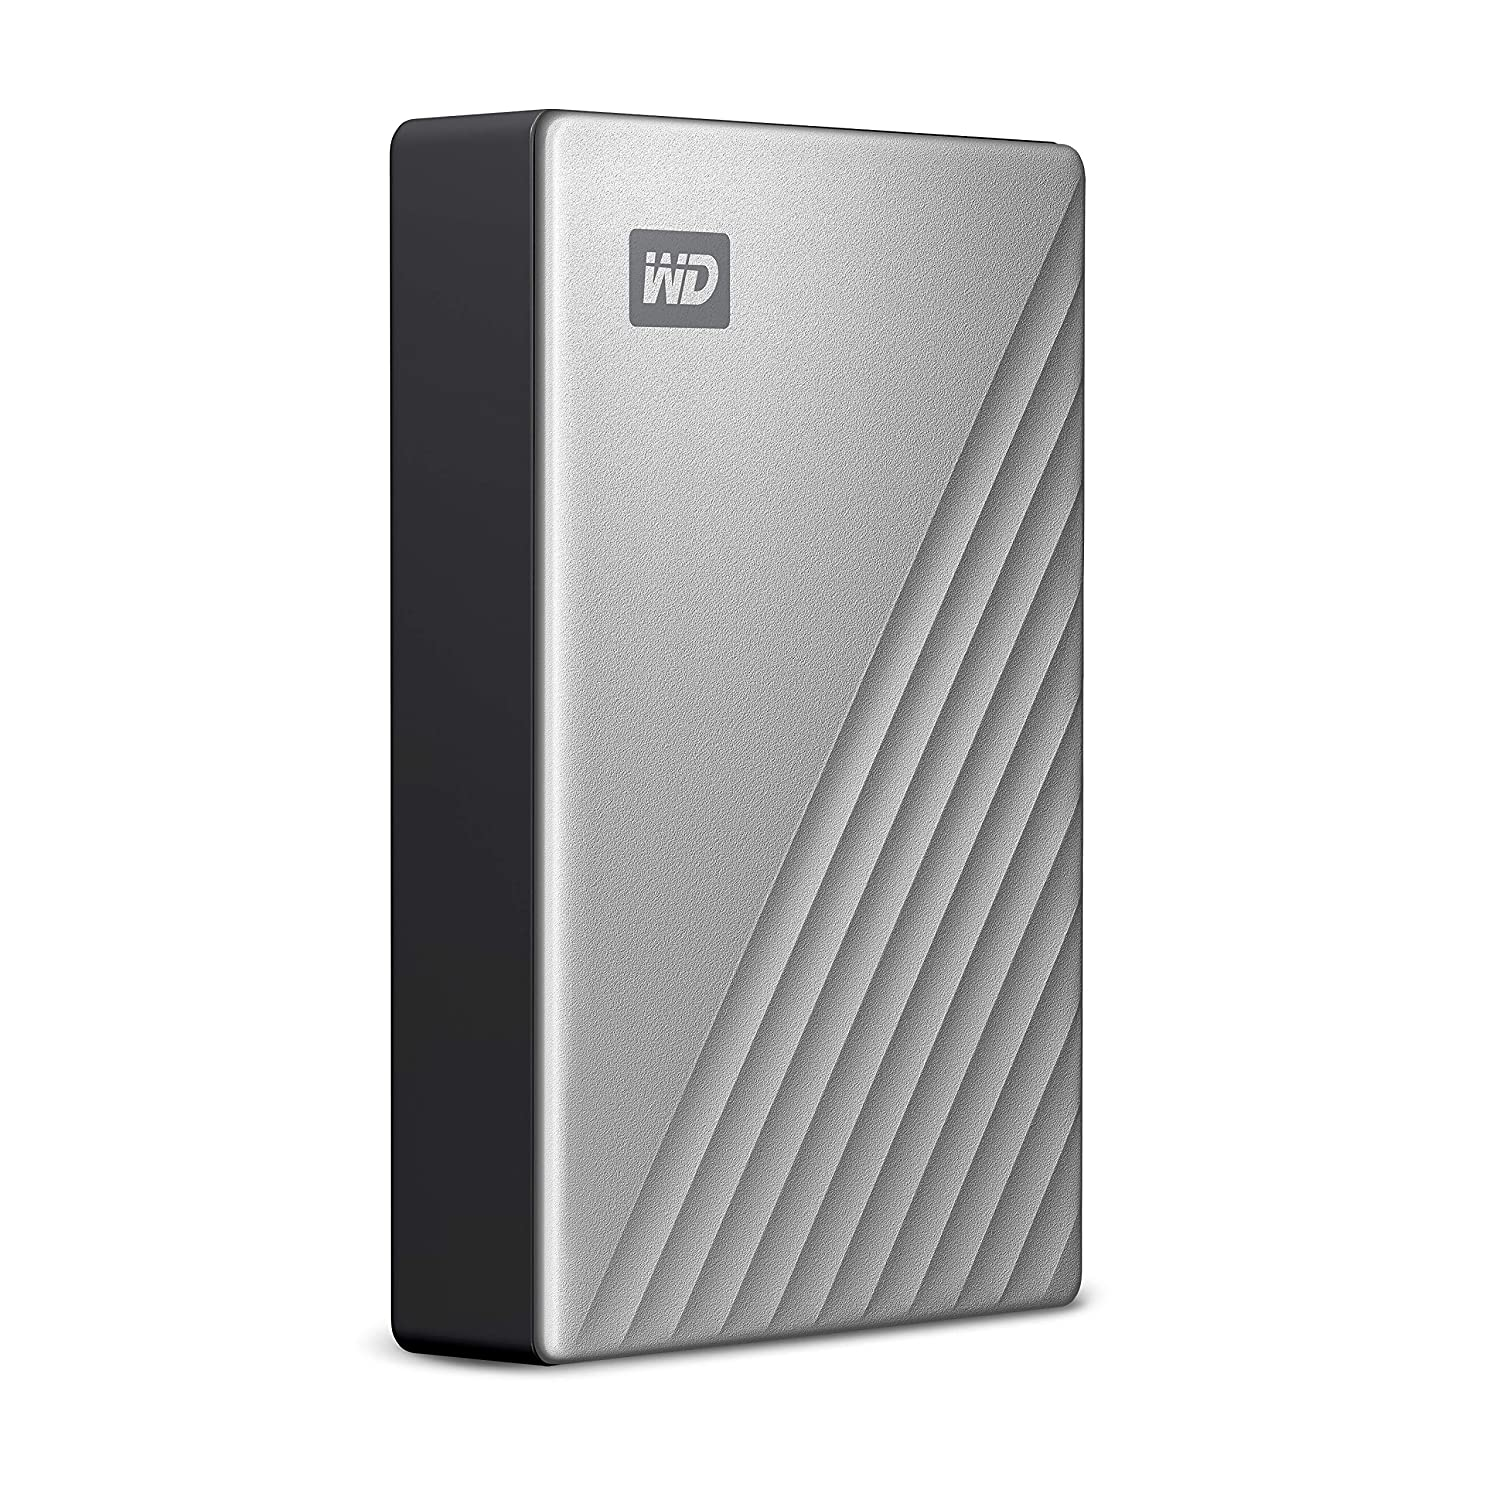 WD My Passport Ultra - Disco Duro Externo para Mac de 4 TB, Preparado para USB-C: Western-Digital: Amazon.es: Informática